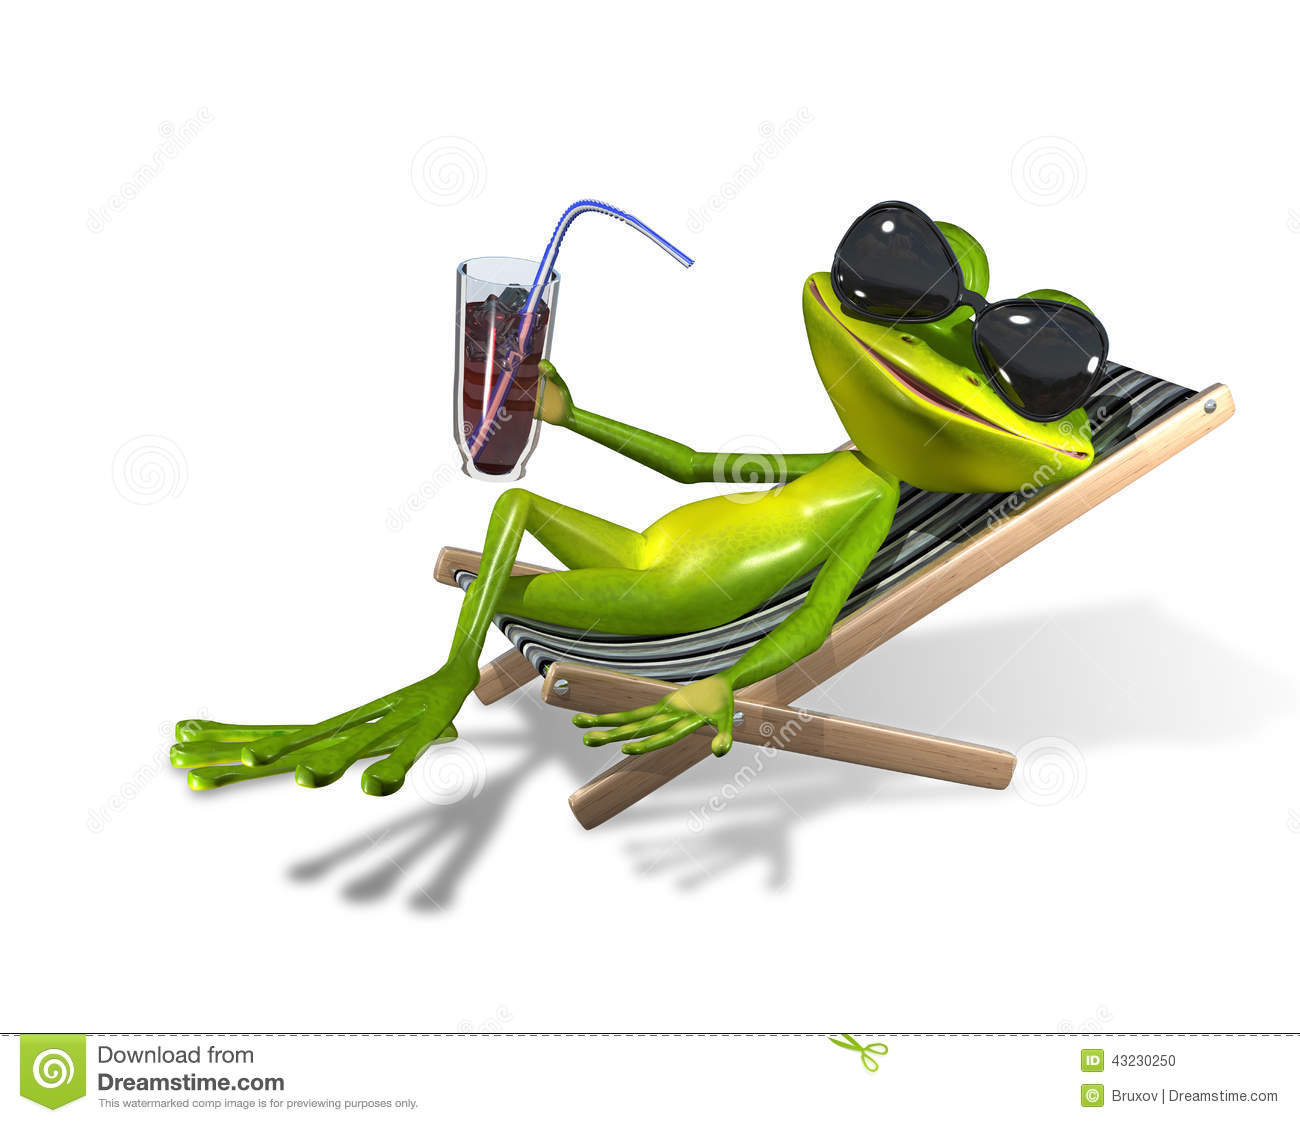 Sicilys Best Kept Secret as well Stock Illustration Frog Deckchair Green Drink Sun Lounger Image43230250 as well Mc Cold Mix as well 2 further Japanese wave dot. on small glass